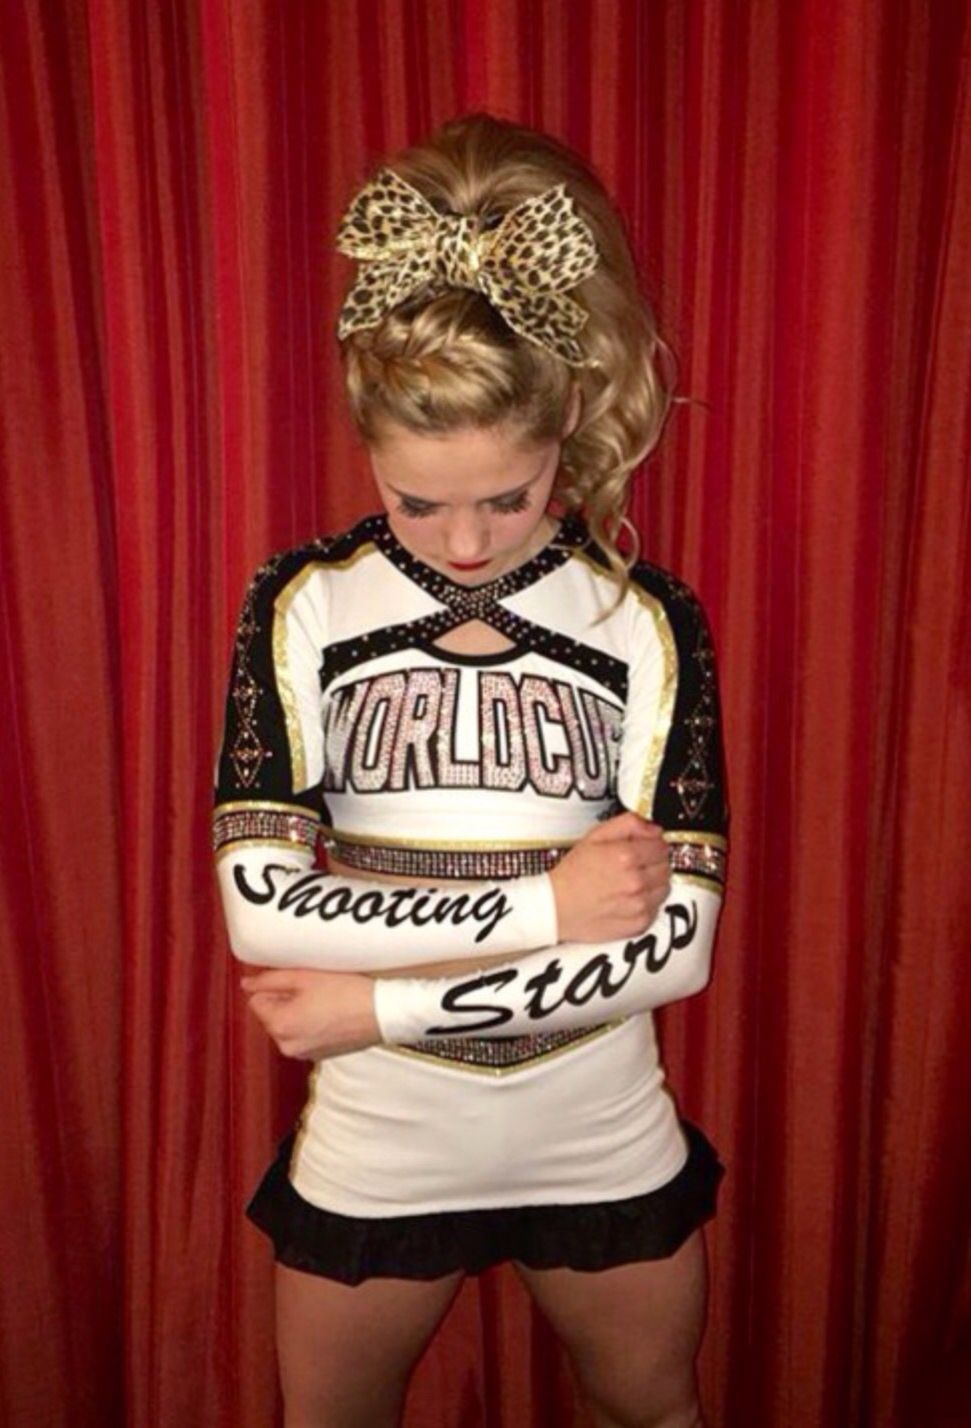 World Cup Shooting Stars Cheer Outfits Cheer Picture Poses Cheer Poses